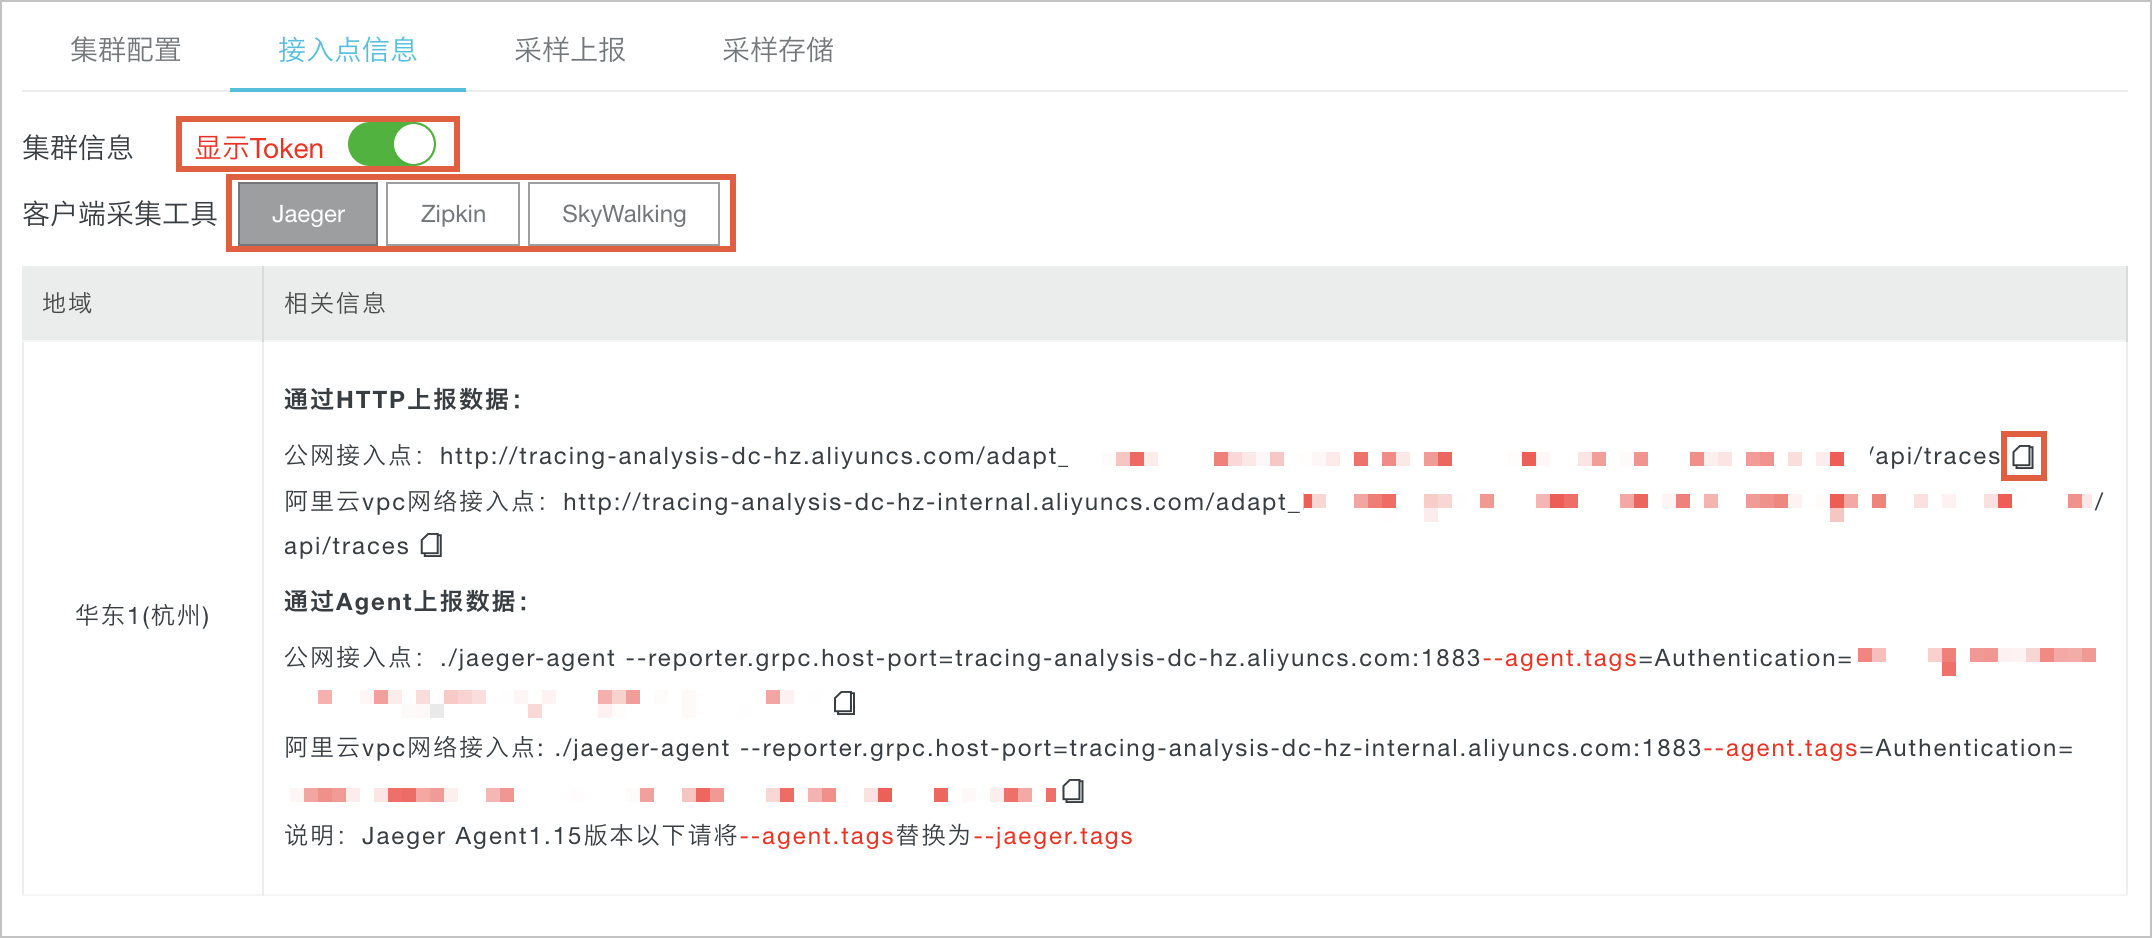 Tracing Analysis Endpoint Section